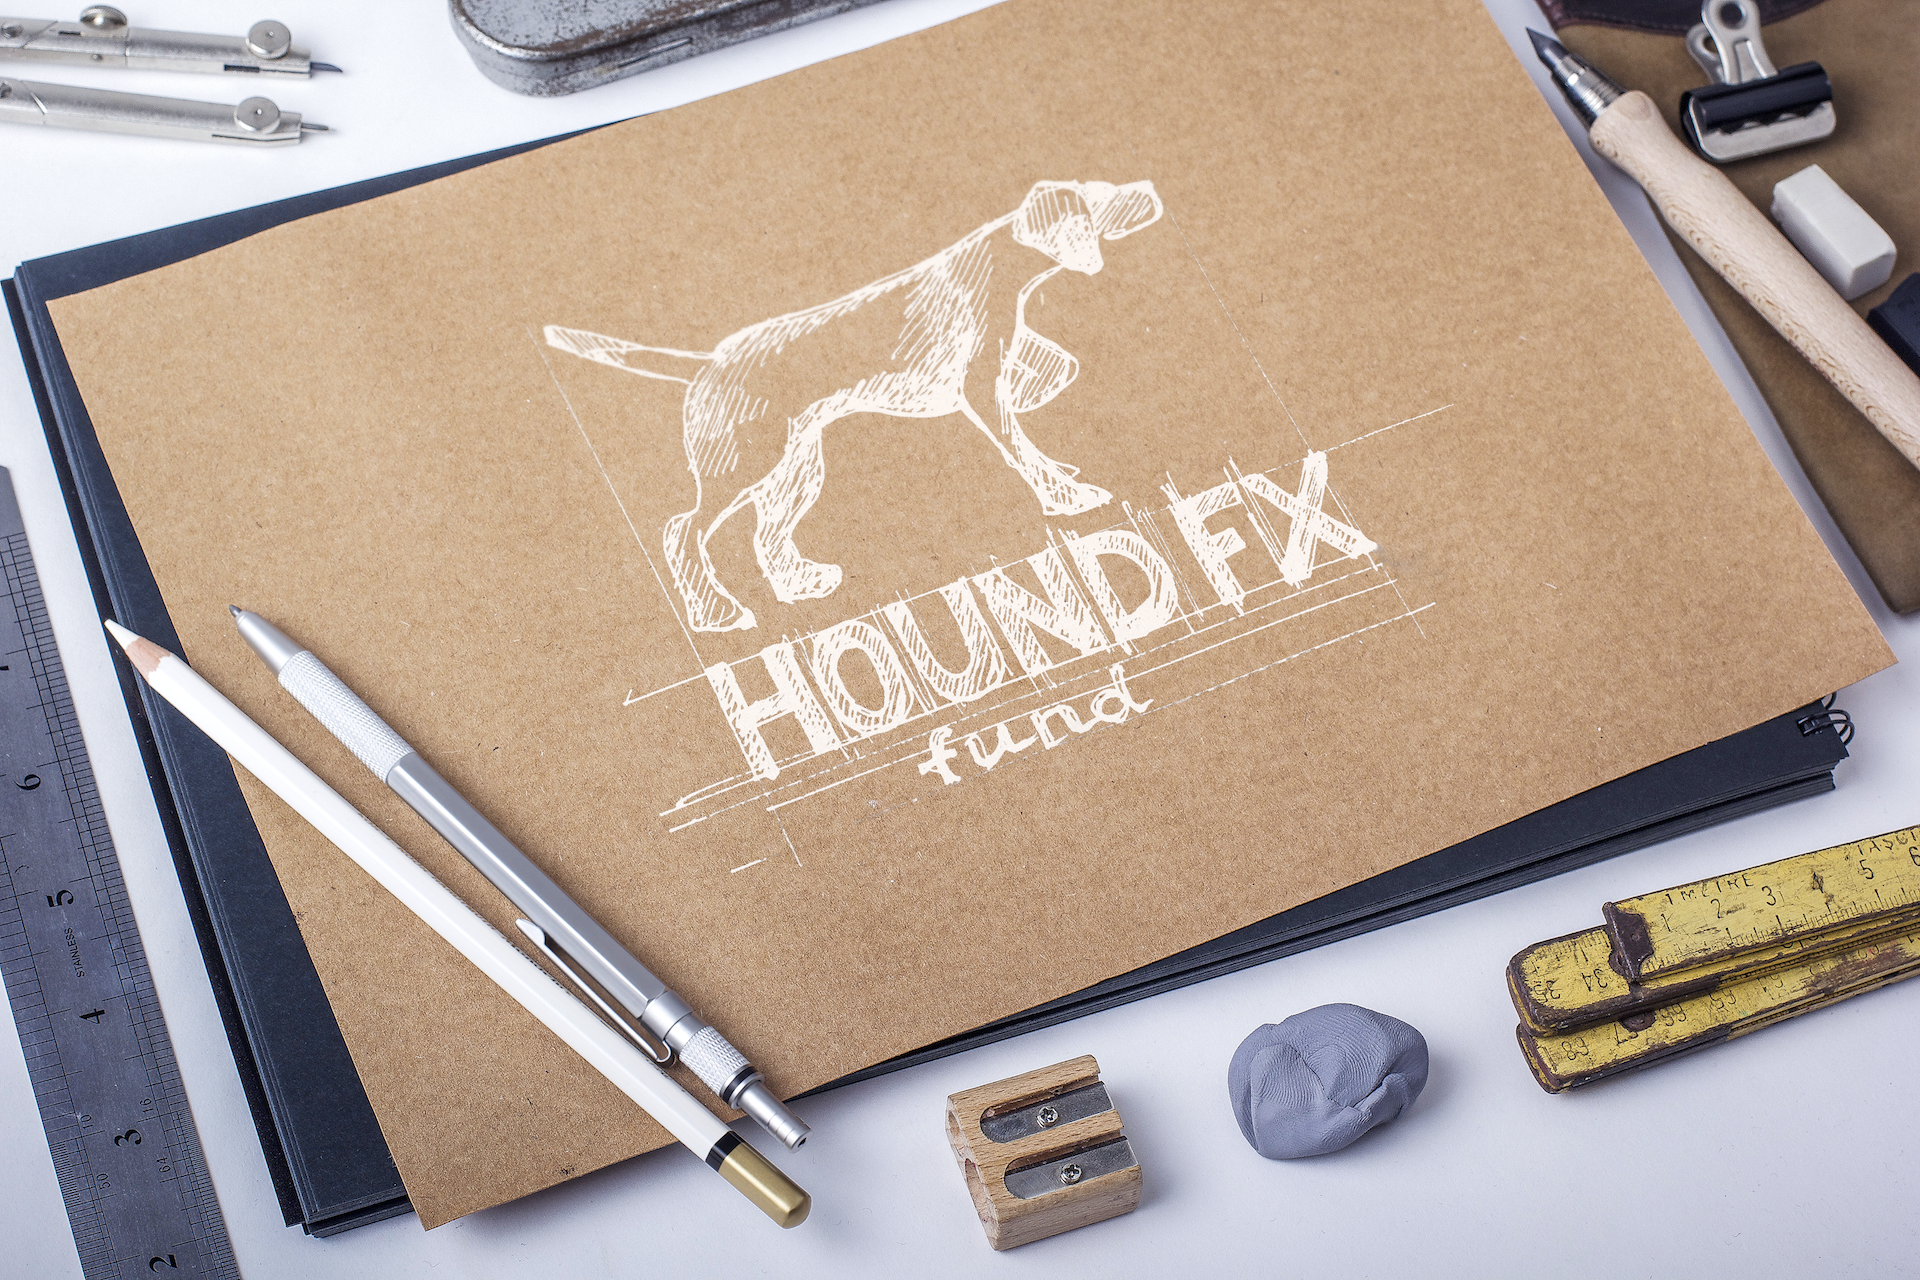 Image search & drafting - Found FX logo, featuring a hunting dog in a pointing position